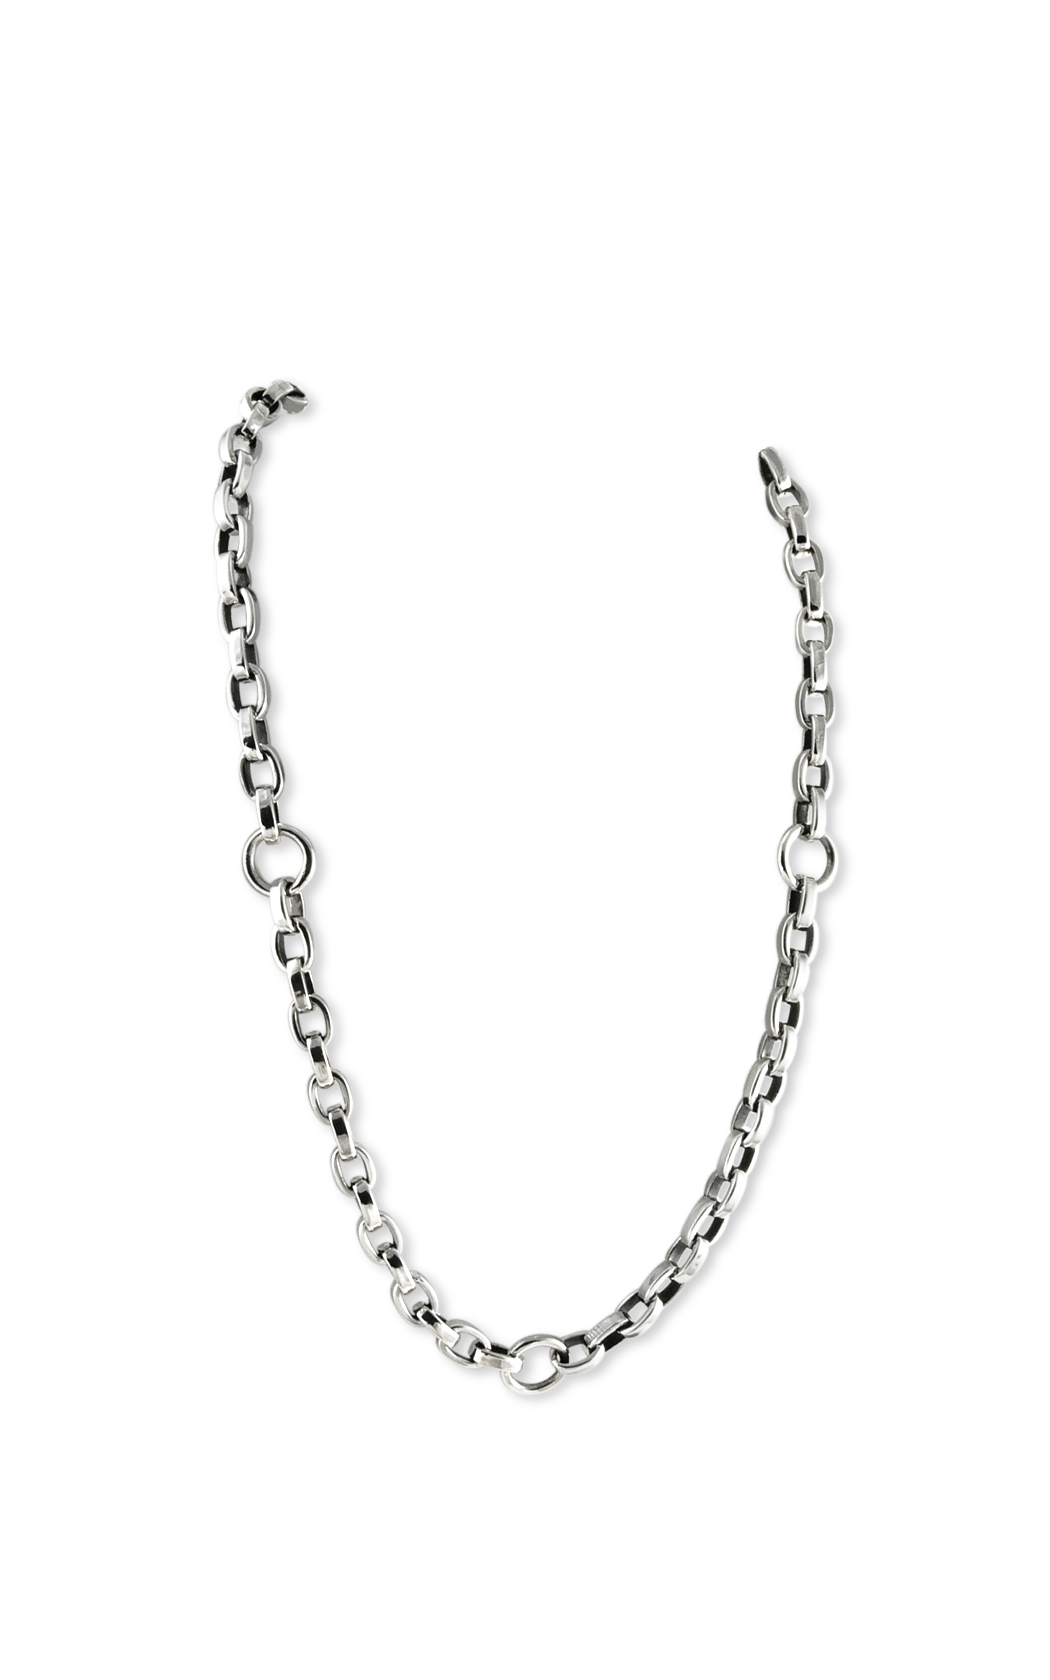 Zina Contemporary Necklace A912-17 product image